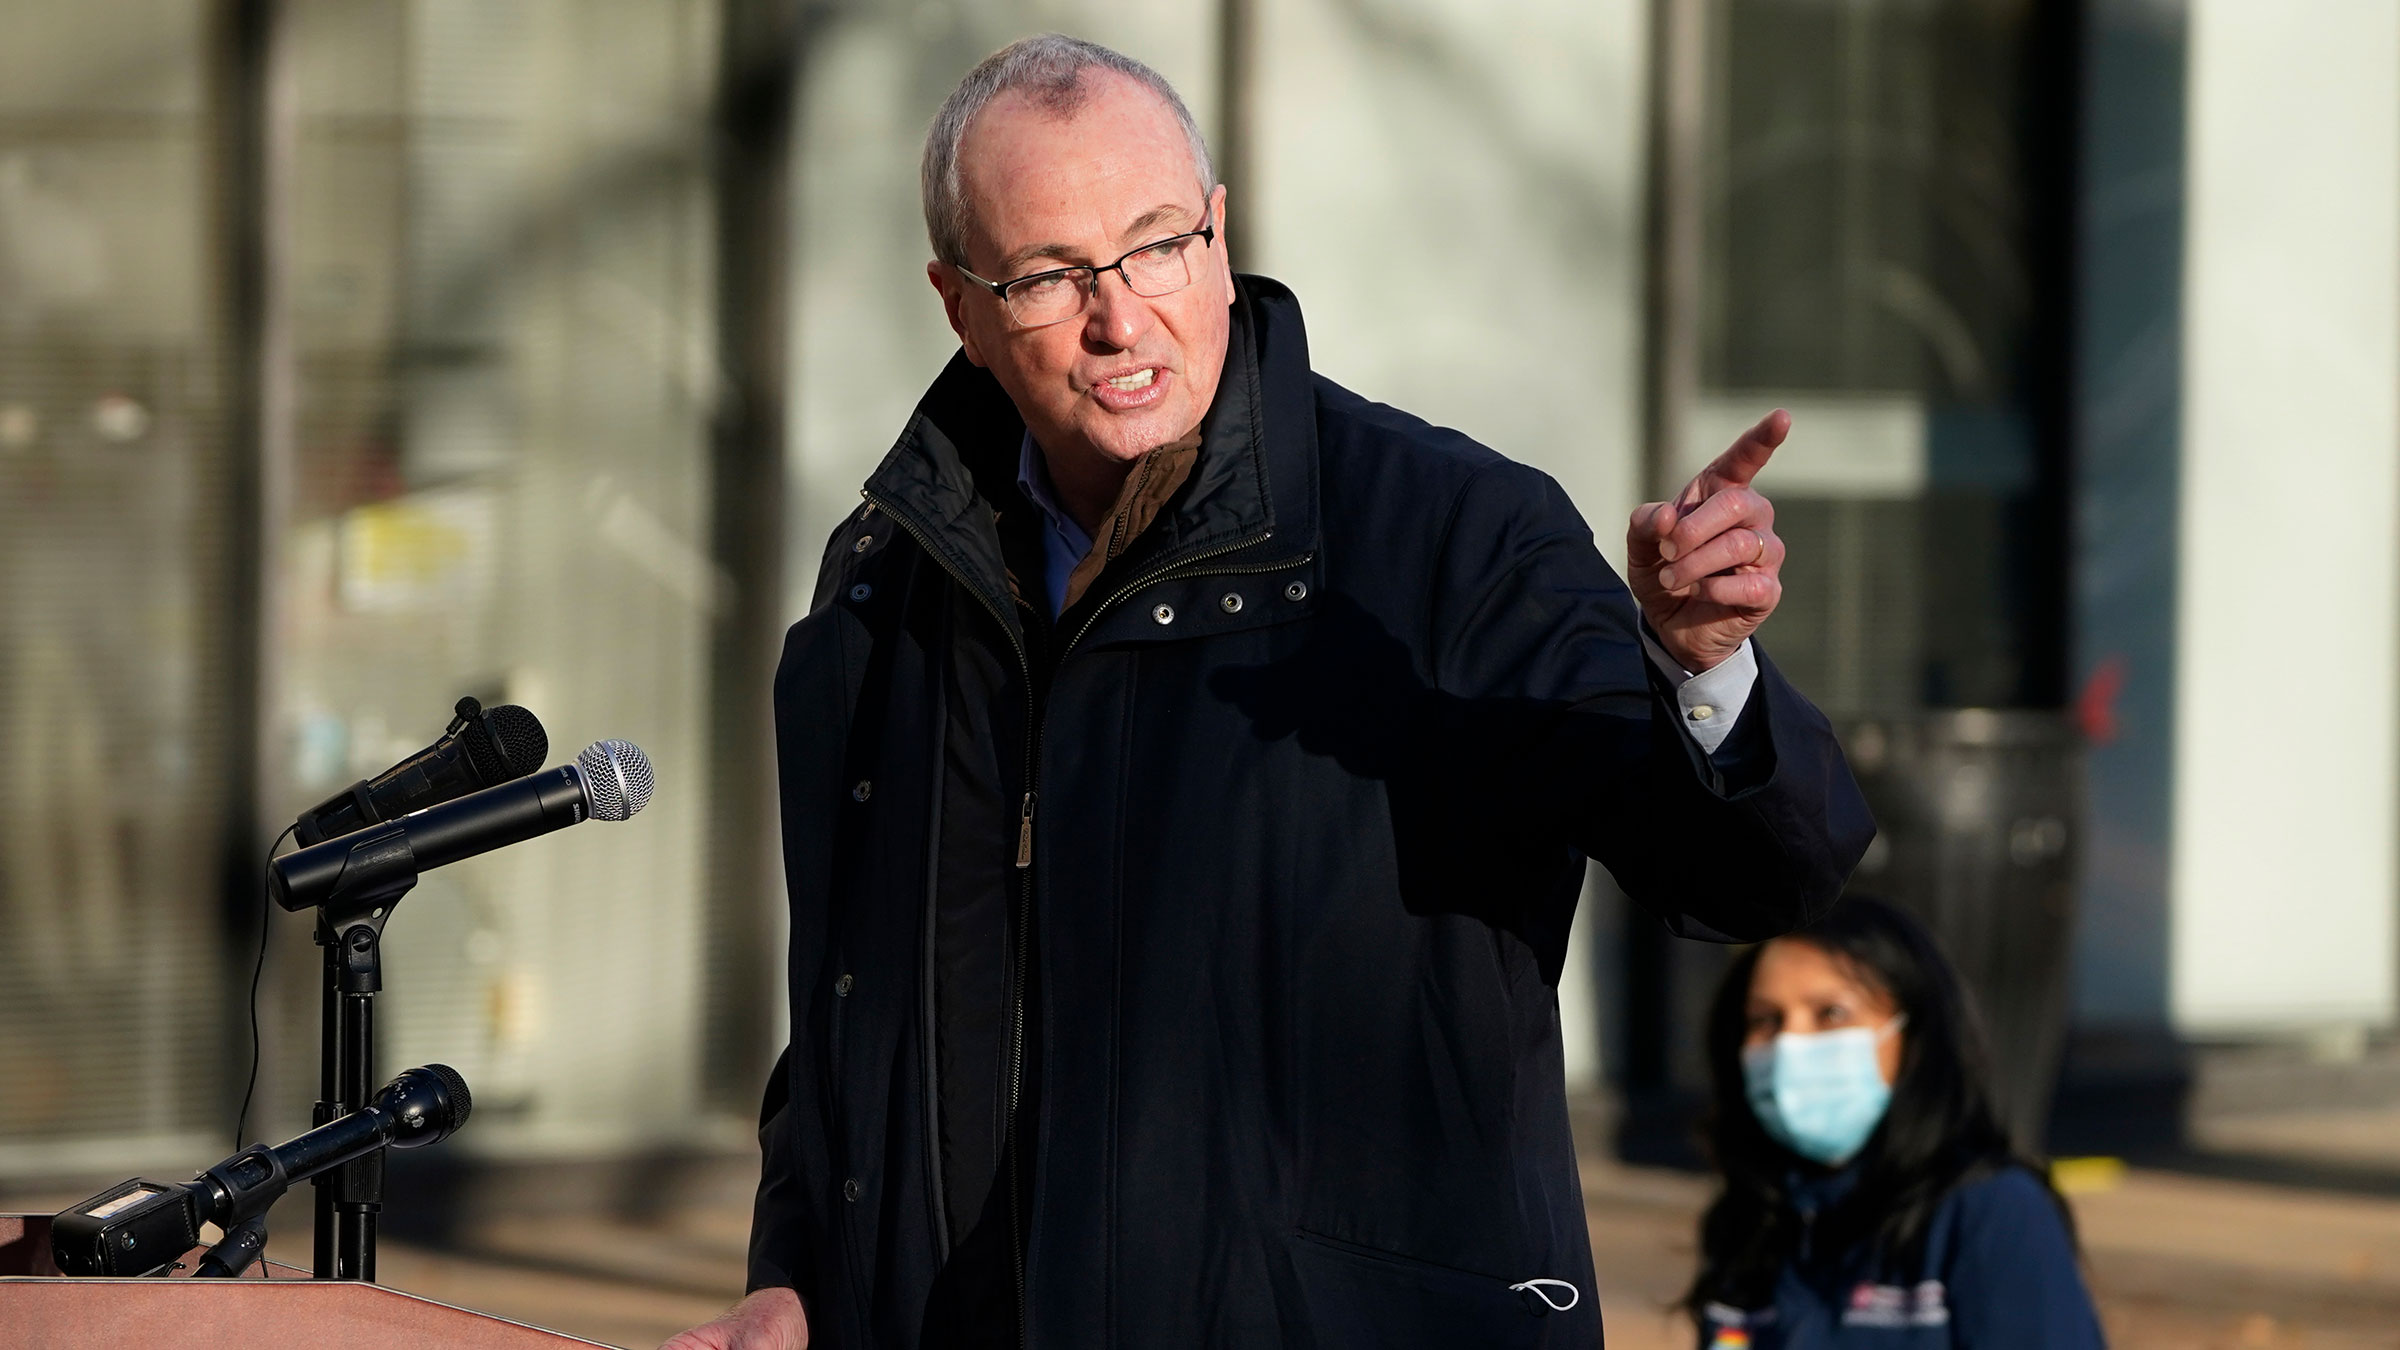 New Jersey Gov. Phil Murphy speaks during a news conference following the first coronavirus vaccinations at University Hospital's Covid-19 vaccine clinic in Newark, New Jersey, on December 15.